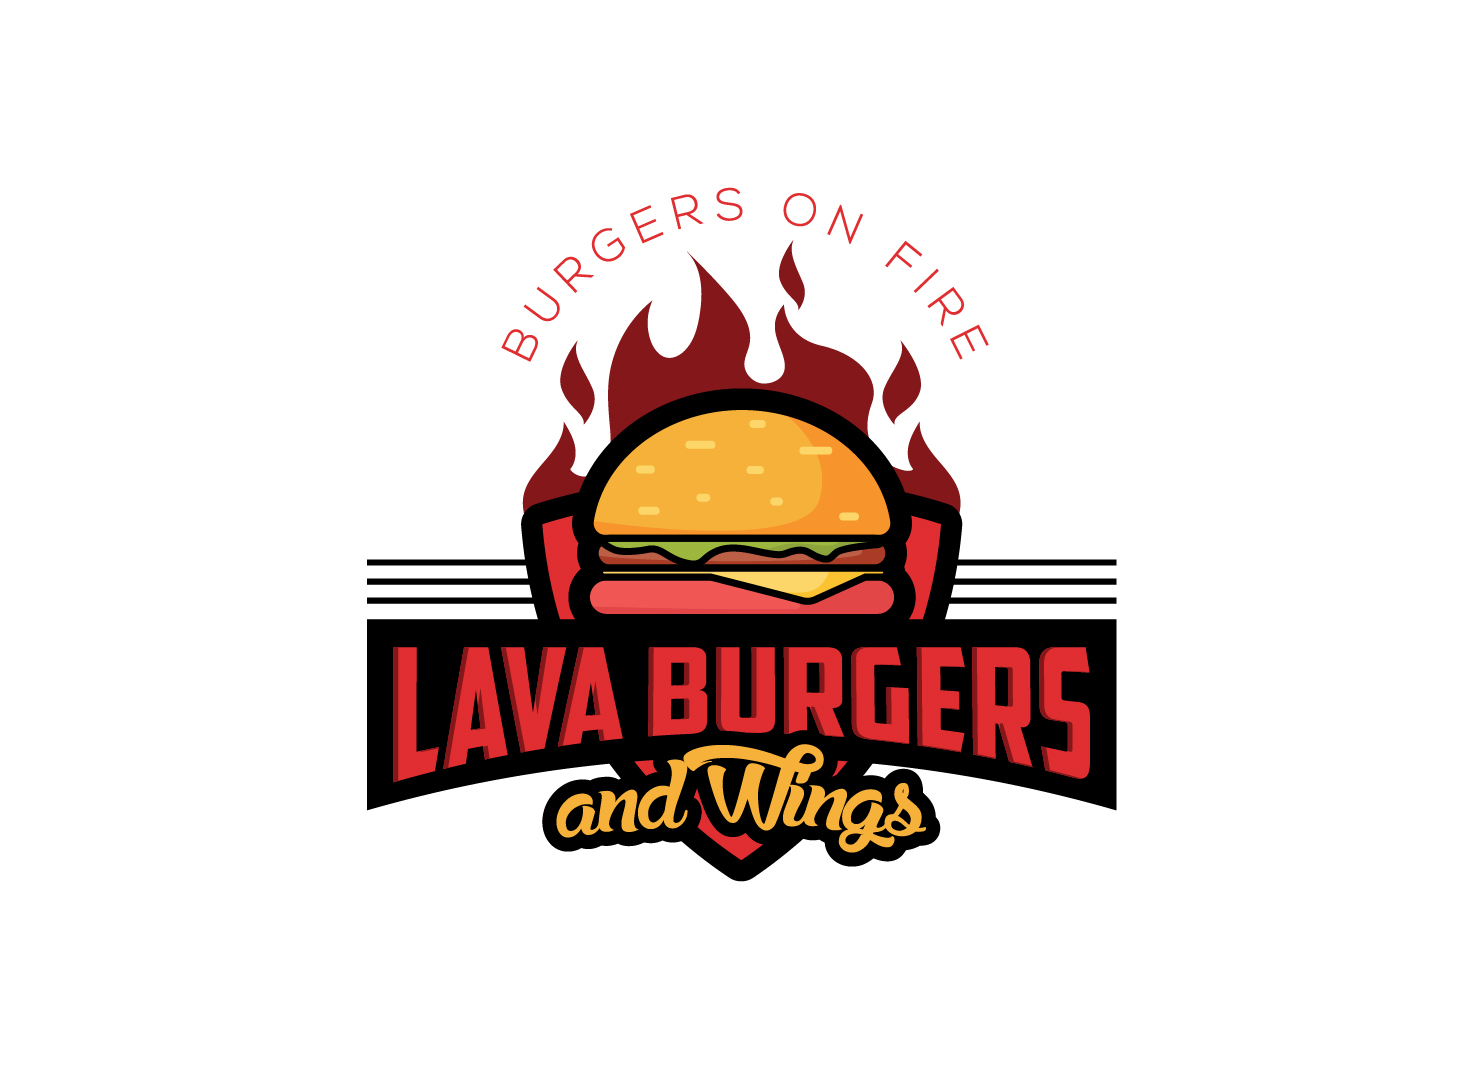 Lava Burgers and Wings